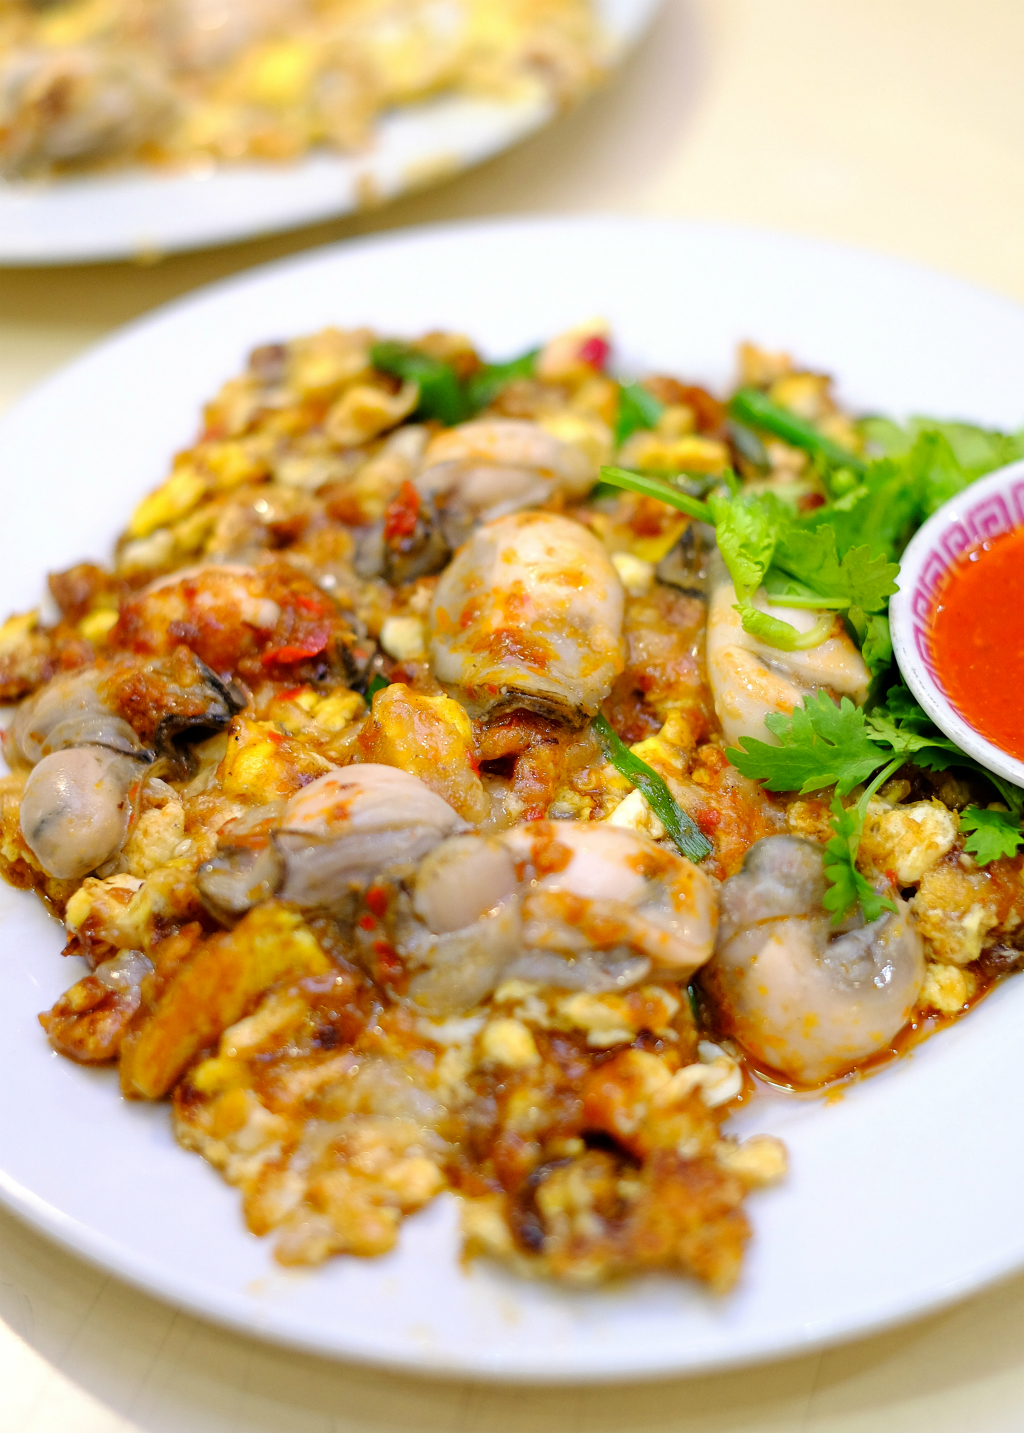 Guide to Jalan Besar & Lavender: Lim's Fried Oyster